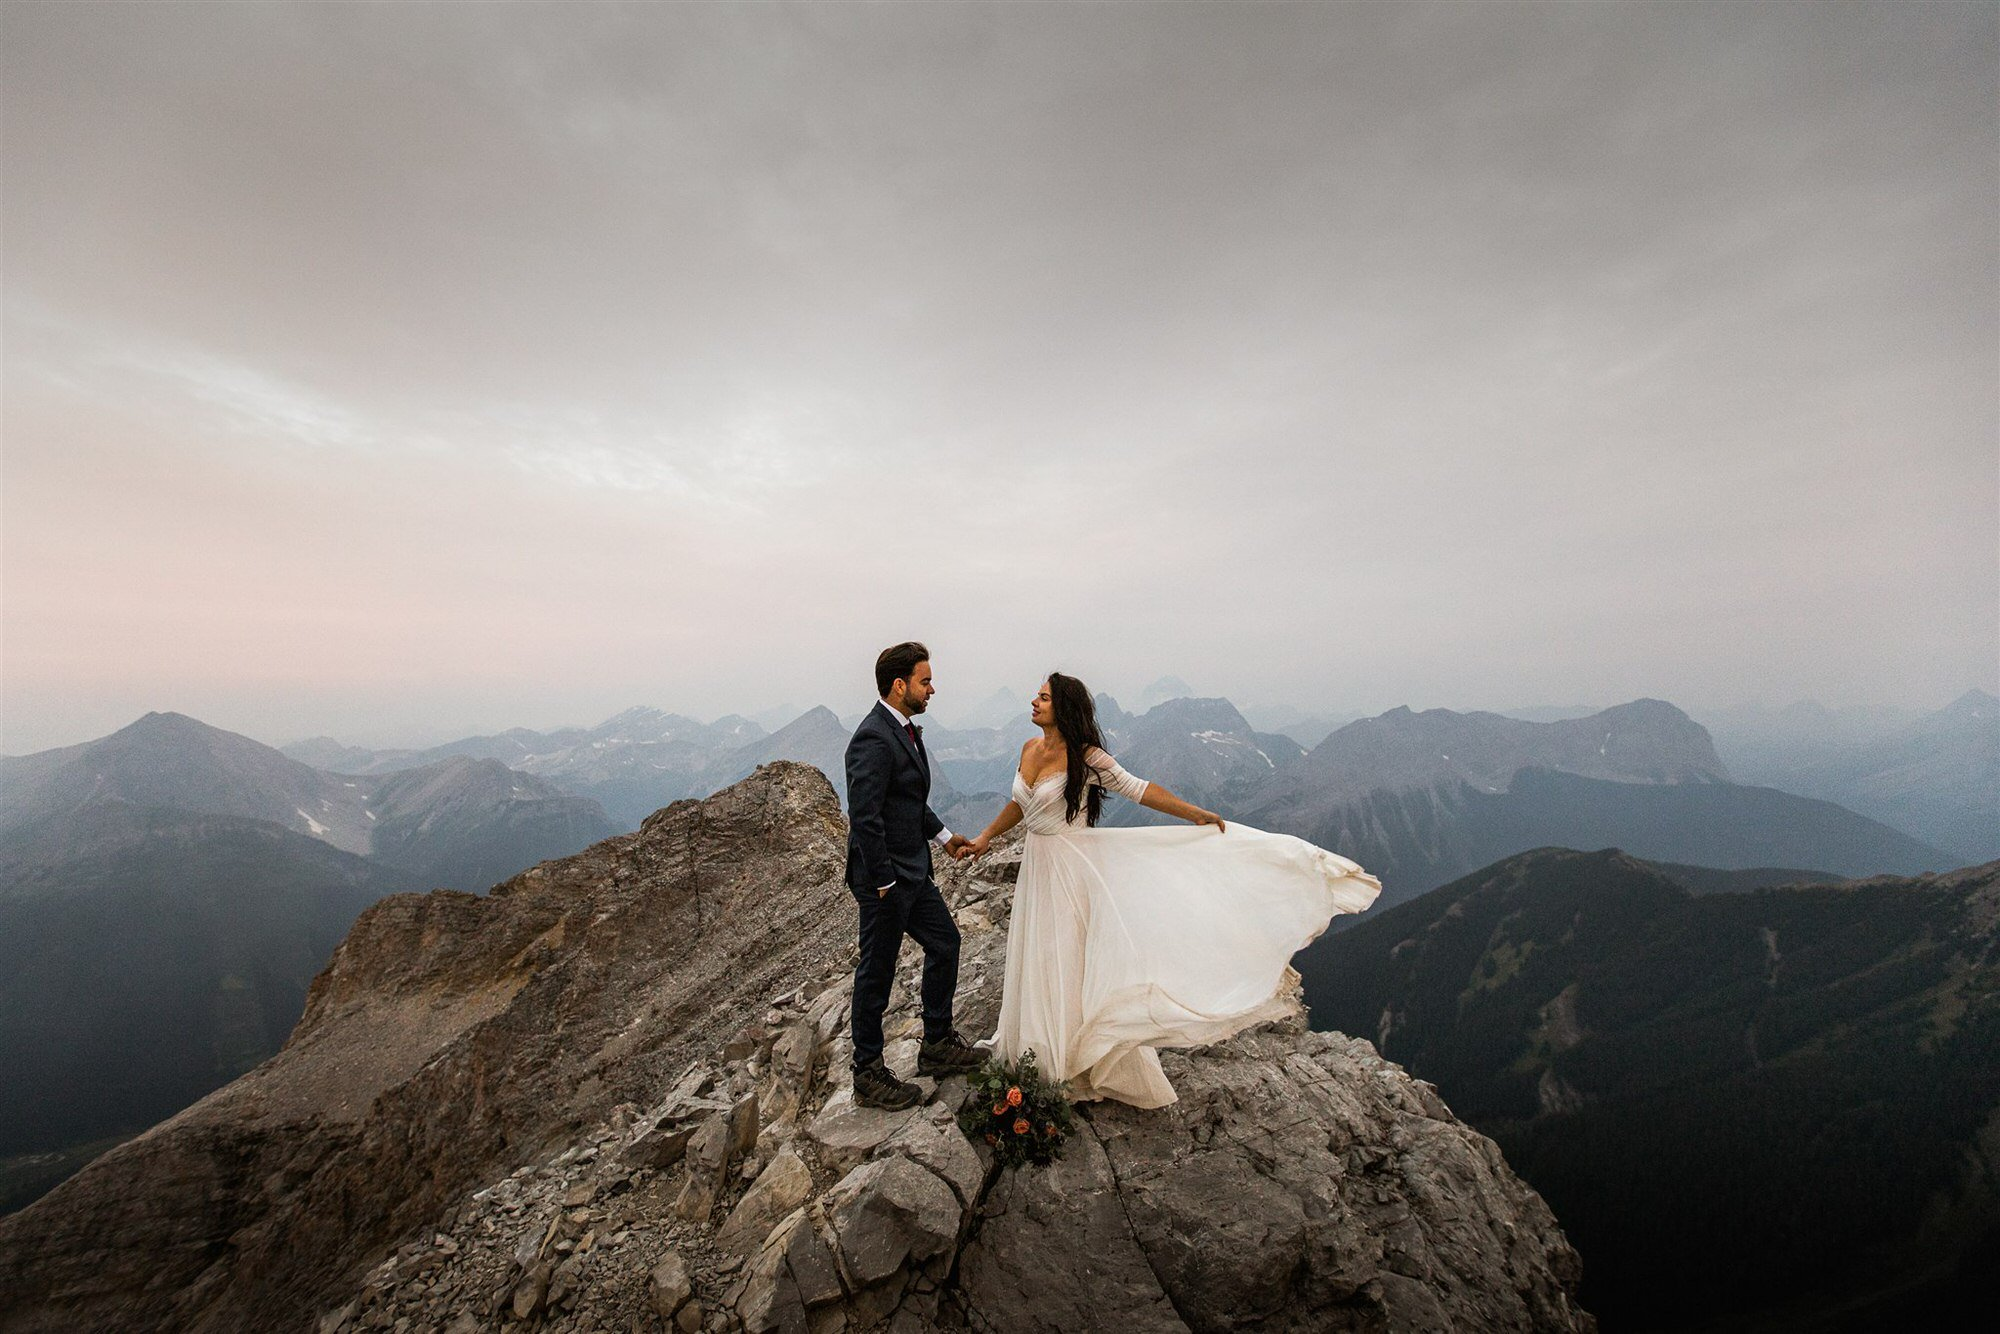 elopement photography in Banff of couple on a cliff and bride's elopement dress in the wind